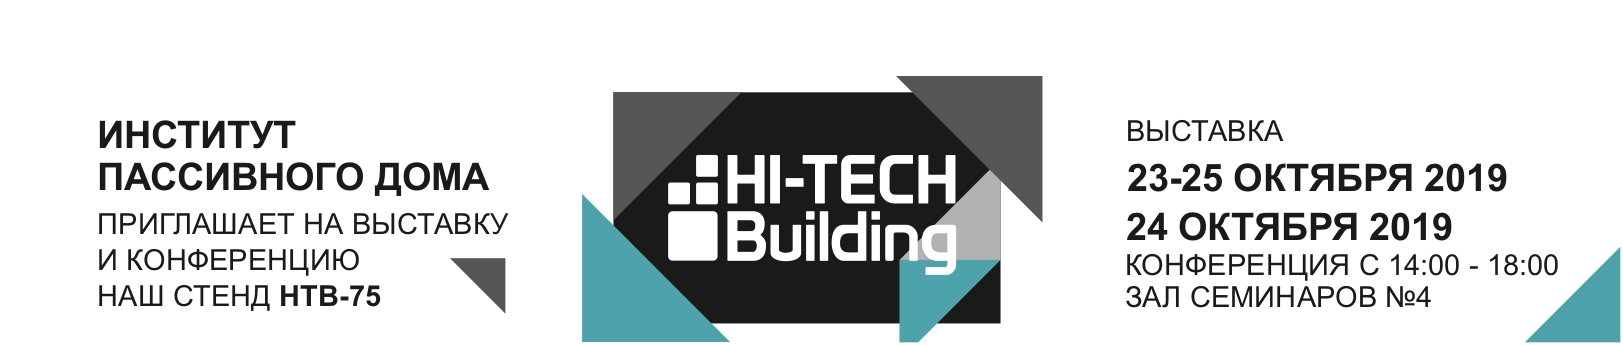 Hi-Tech Building 2019